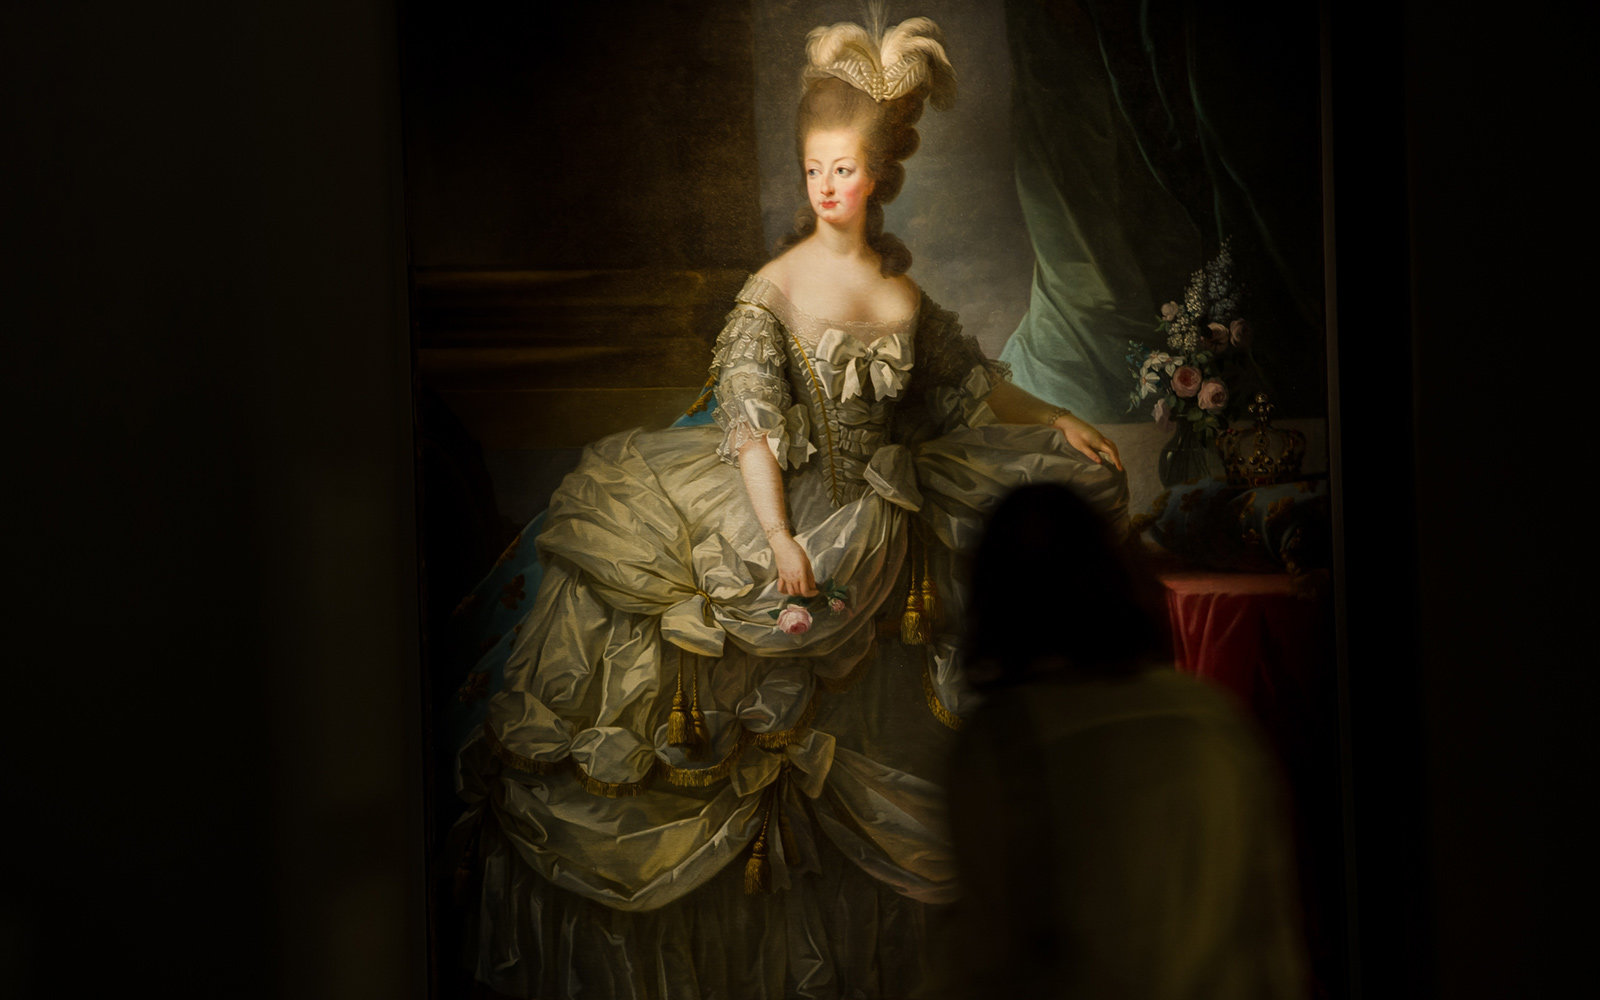 Queen of France Marie-Antoinette, Painted by Élisabeth Vigée Le Brun